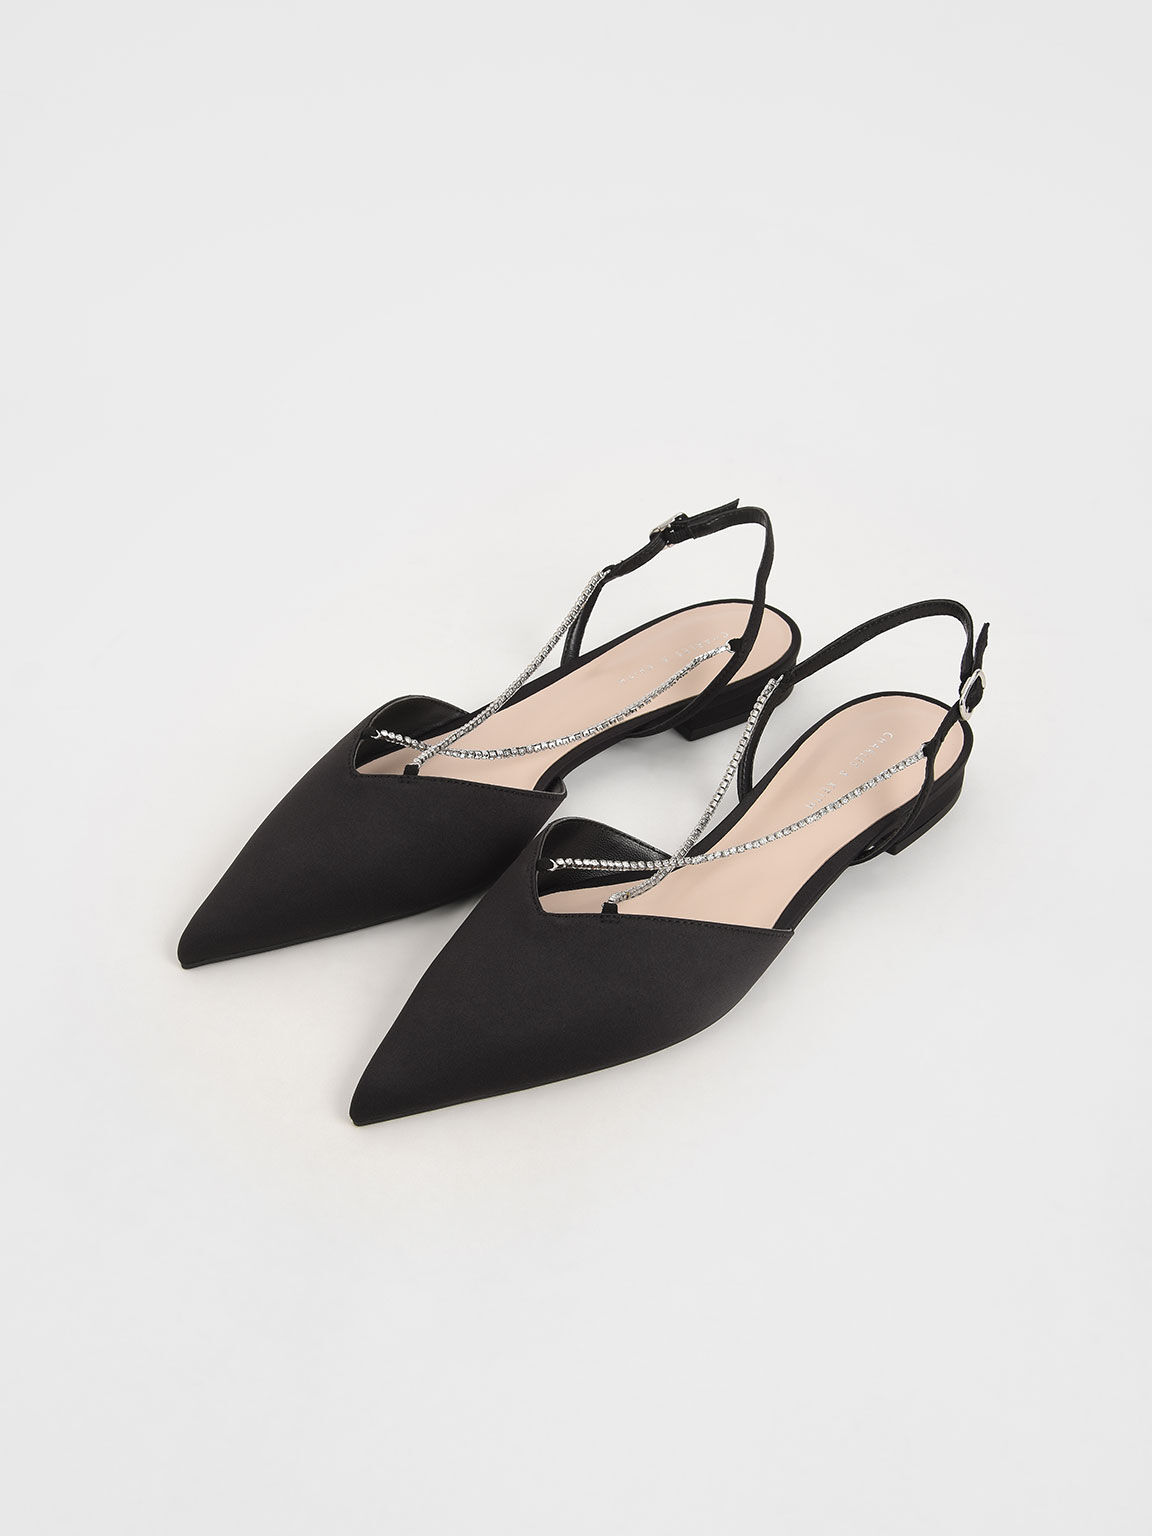 Satin Gem-Embellished Slingback Flats, Black, hi-res